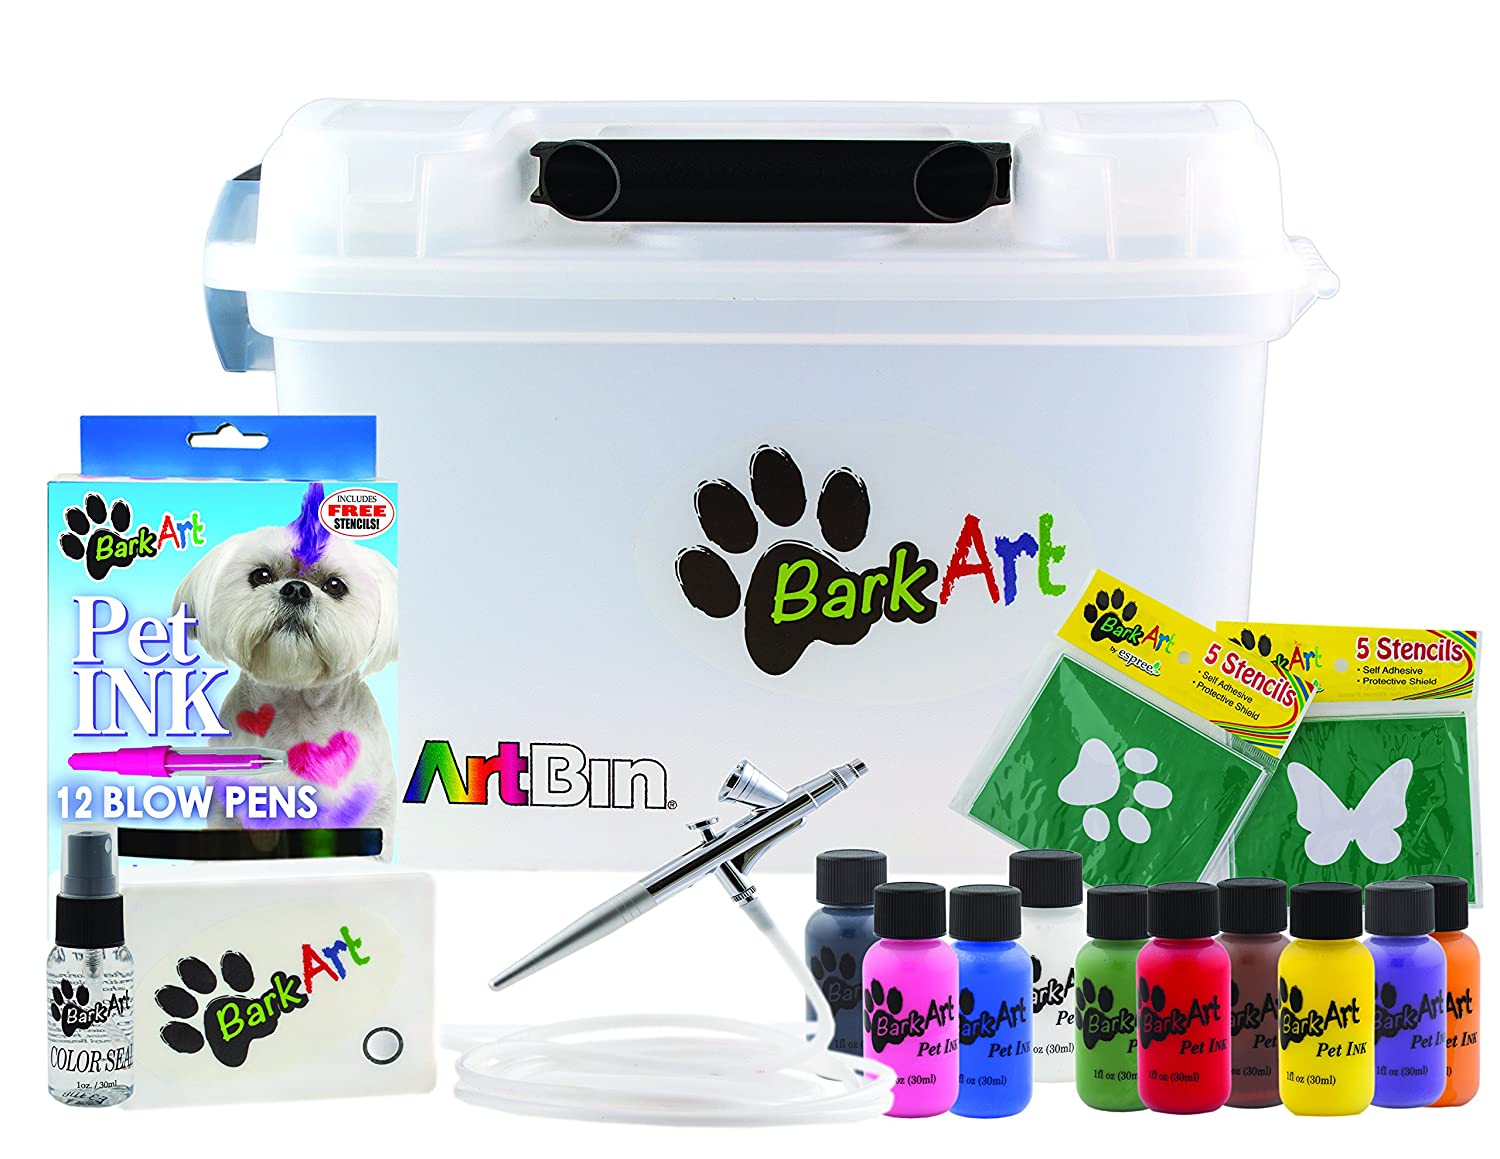 Espree Animal Products 1 Box Airbrush with colors Complete Kit